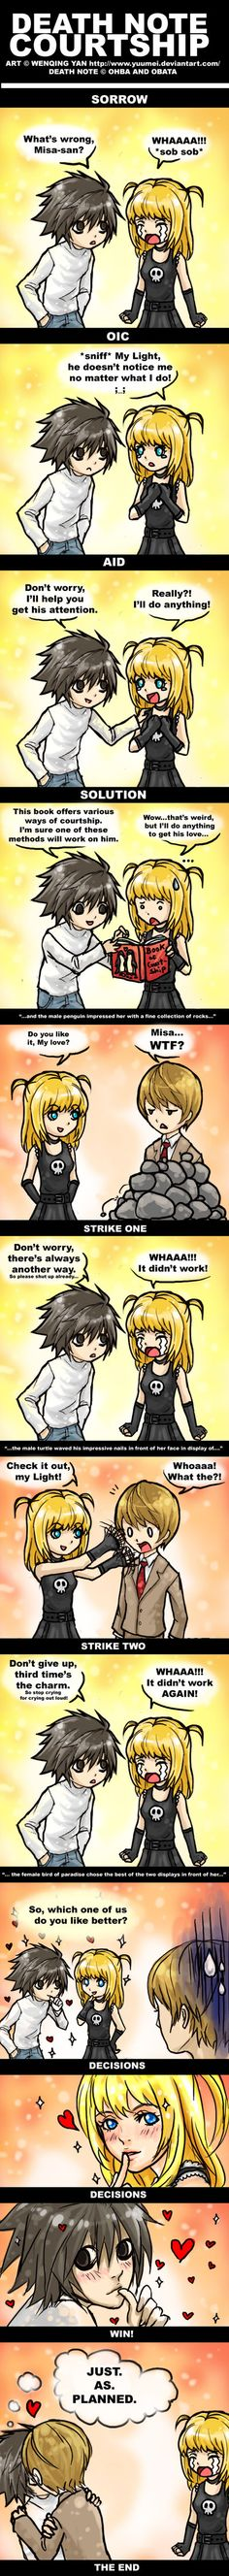 Death Note Courtship by yuumei